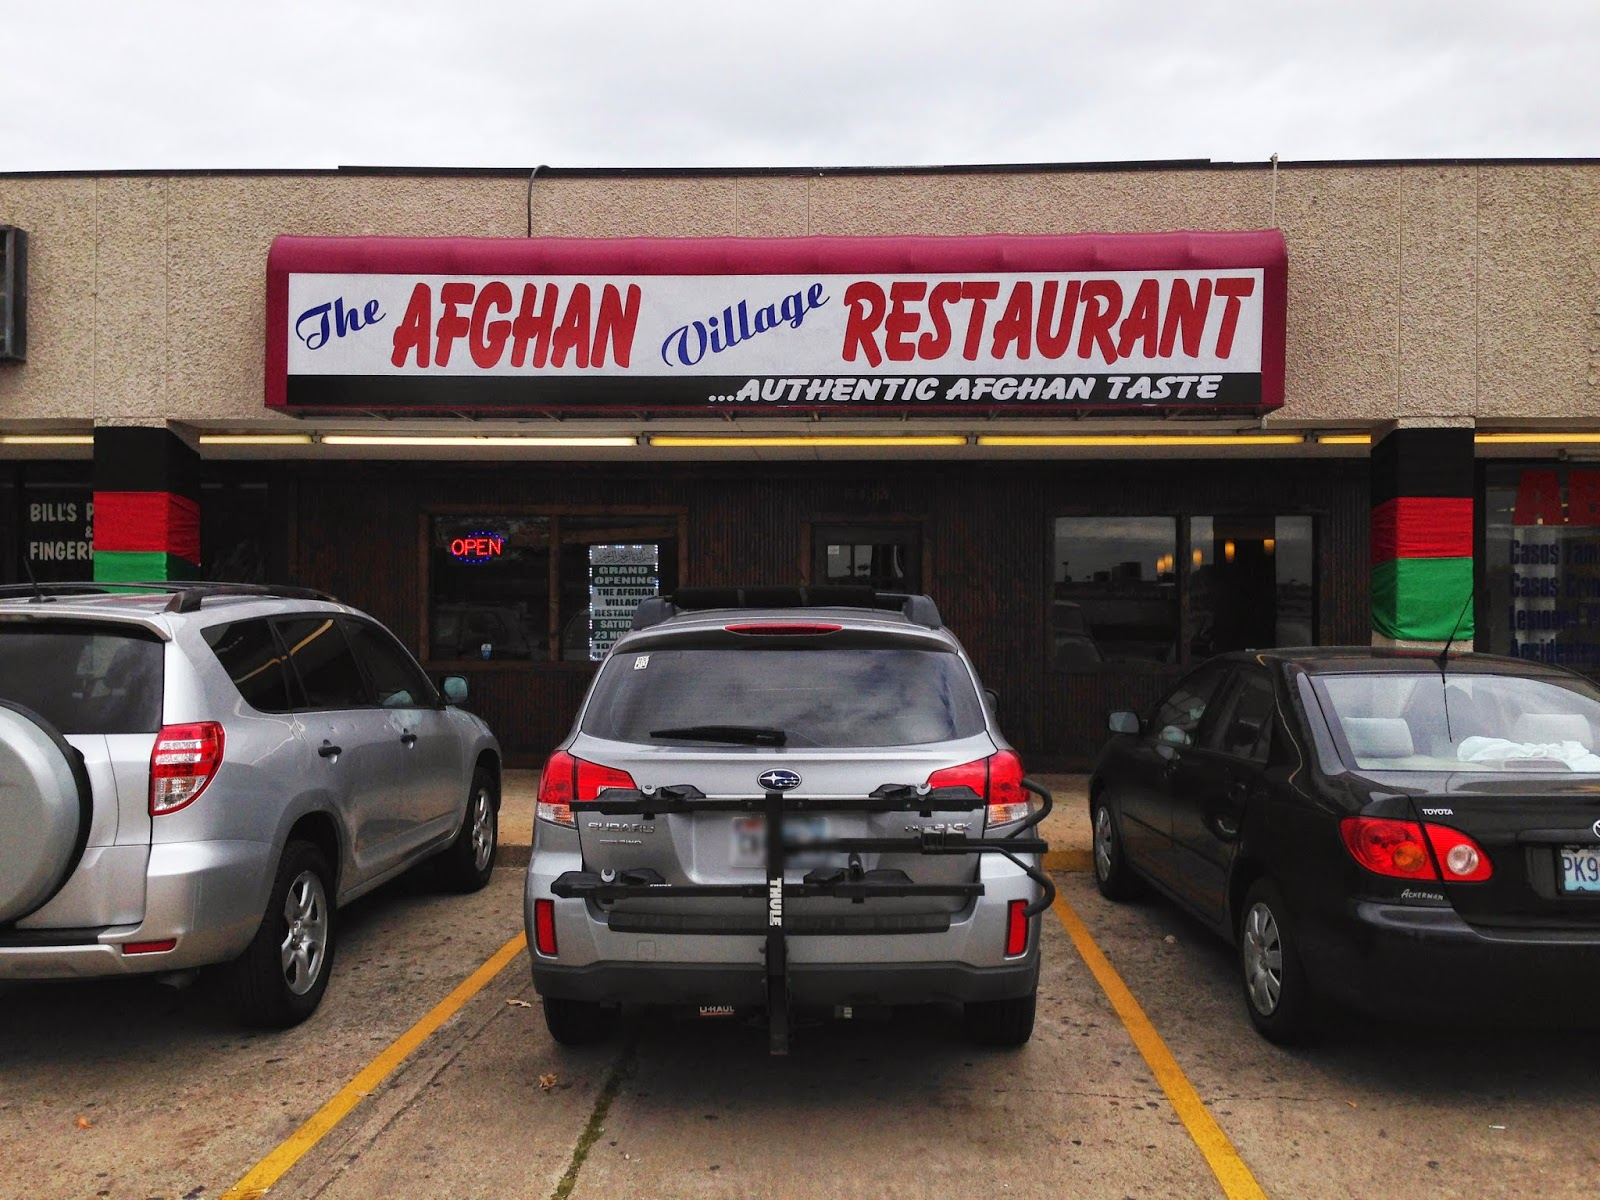 Zain 39 s halal reviews afghan village your traditional for Afghan cuisine houston tx